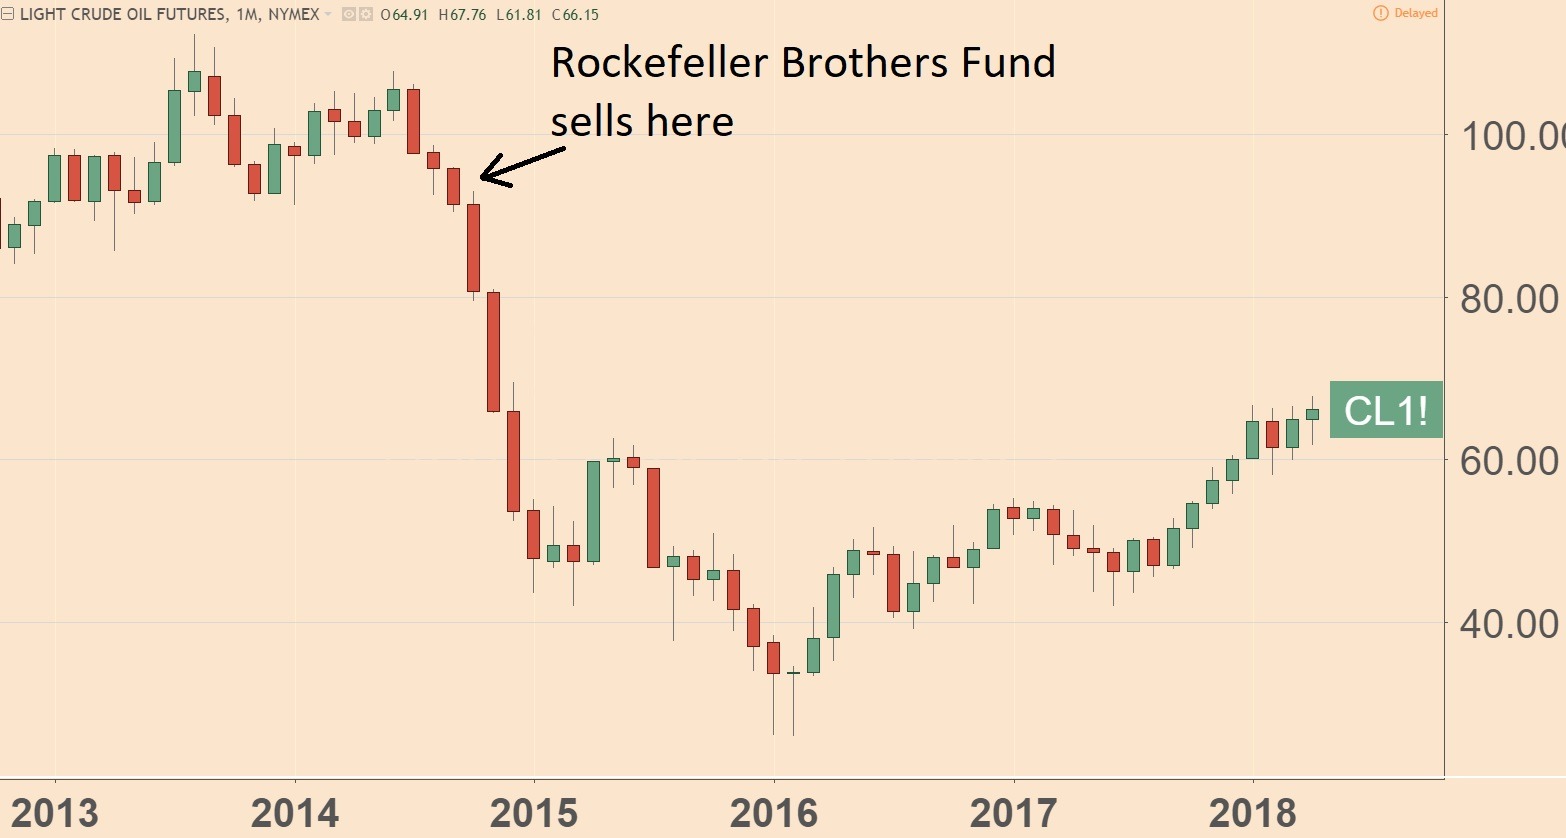 Rockefeller Brothers Fund 2014 Sale